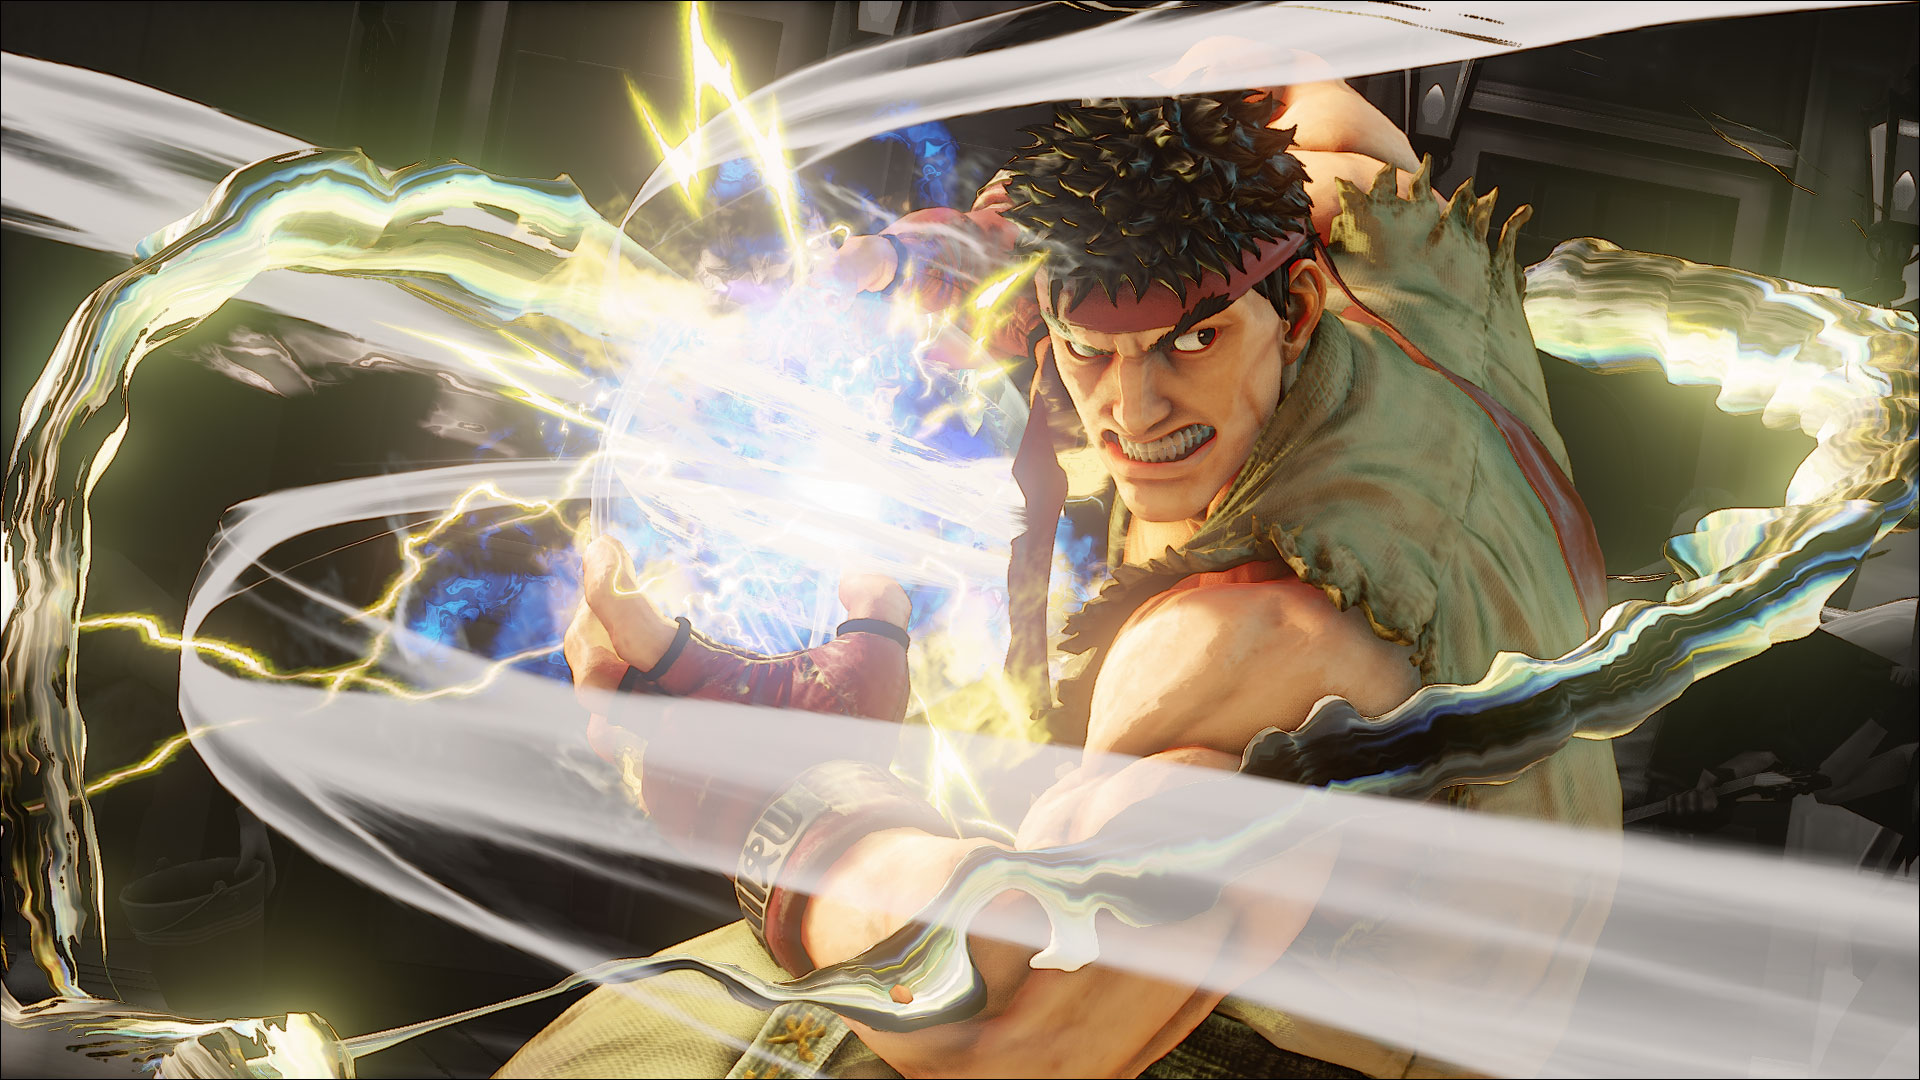 Street Fighter 5 Free Trial Including Season 3 Dlc Coming Next Month